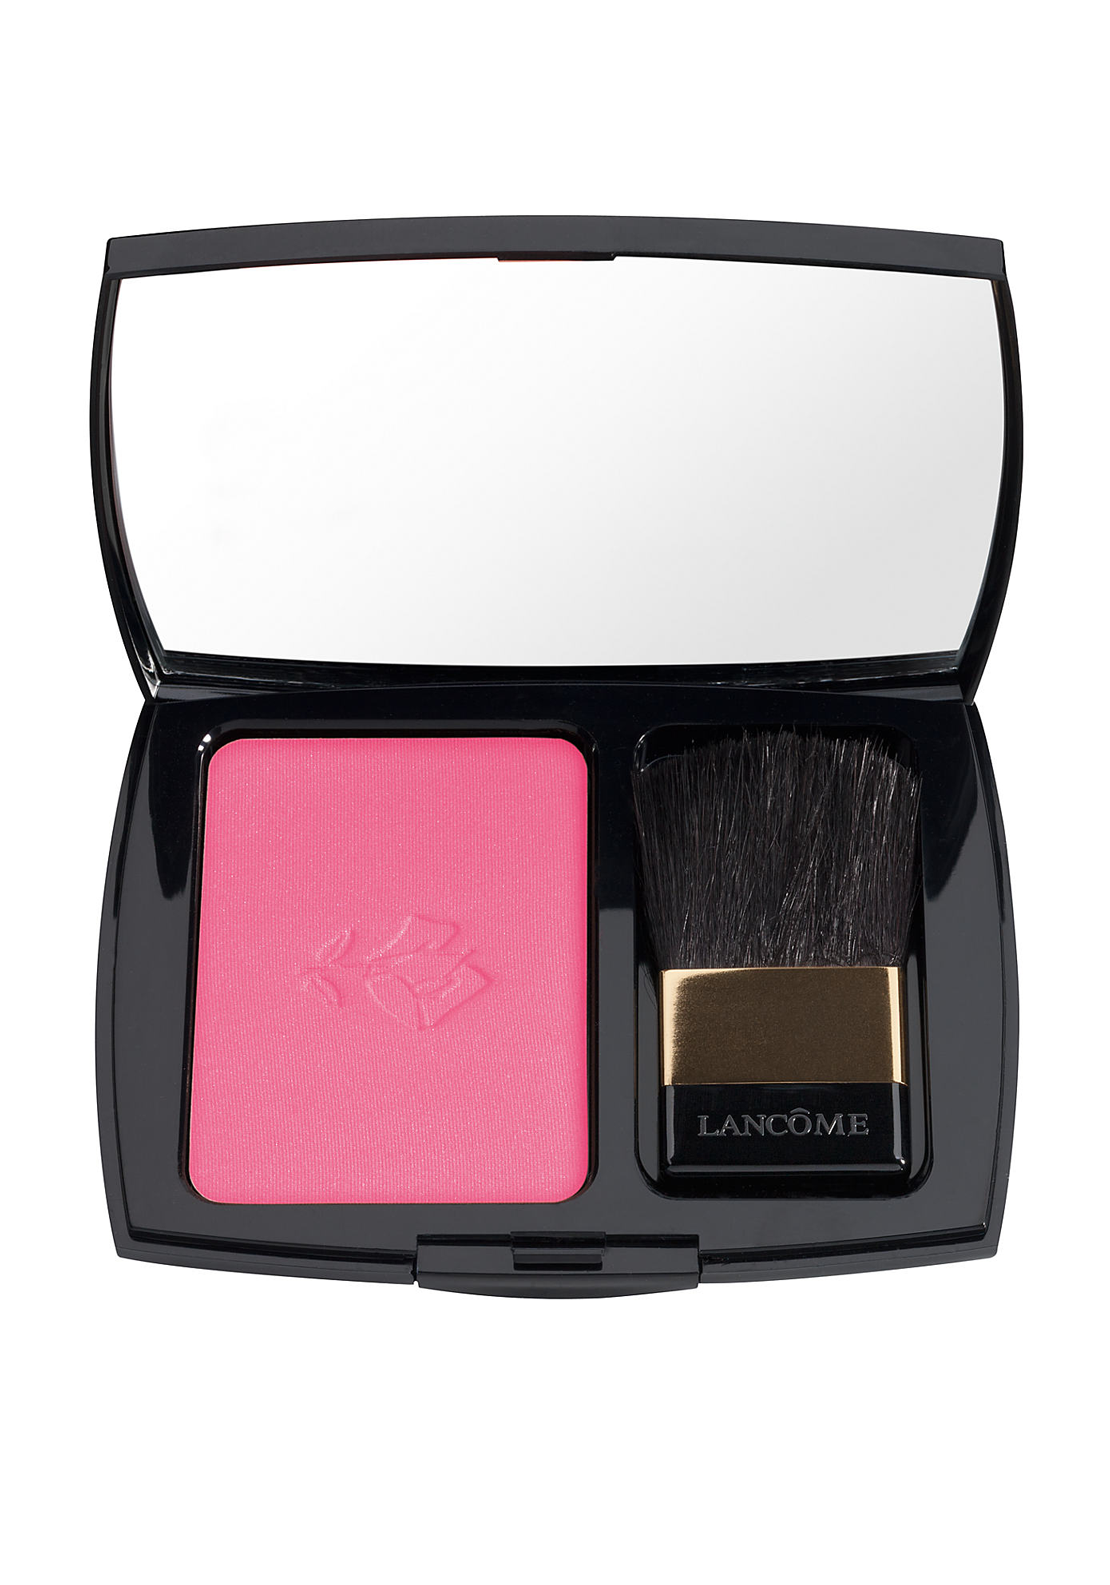 Lancome Blush Subtil Long Lasting Powder Blusher, 021